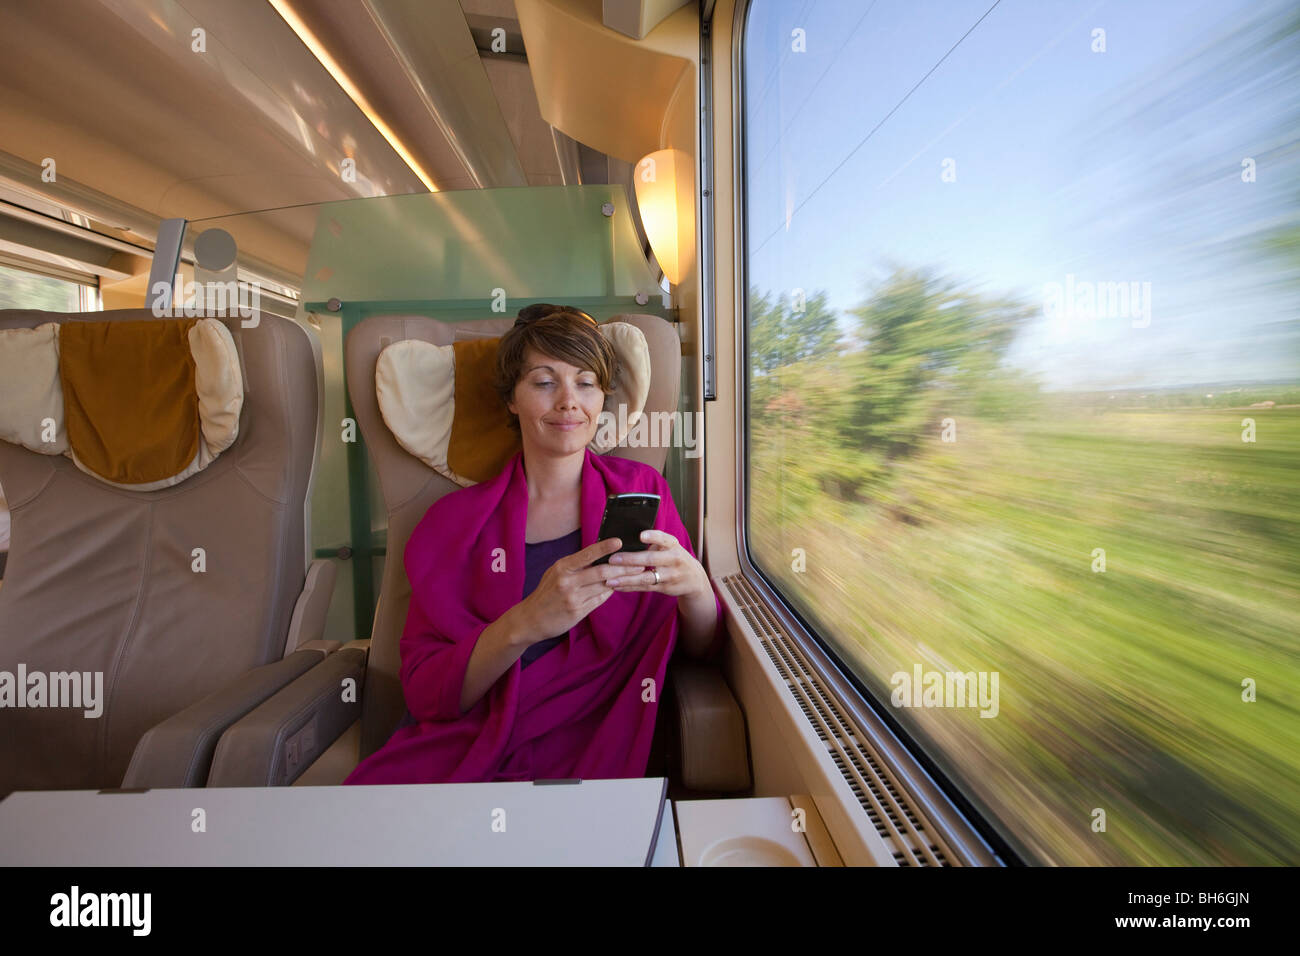 A woman on train - Stock Image